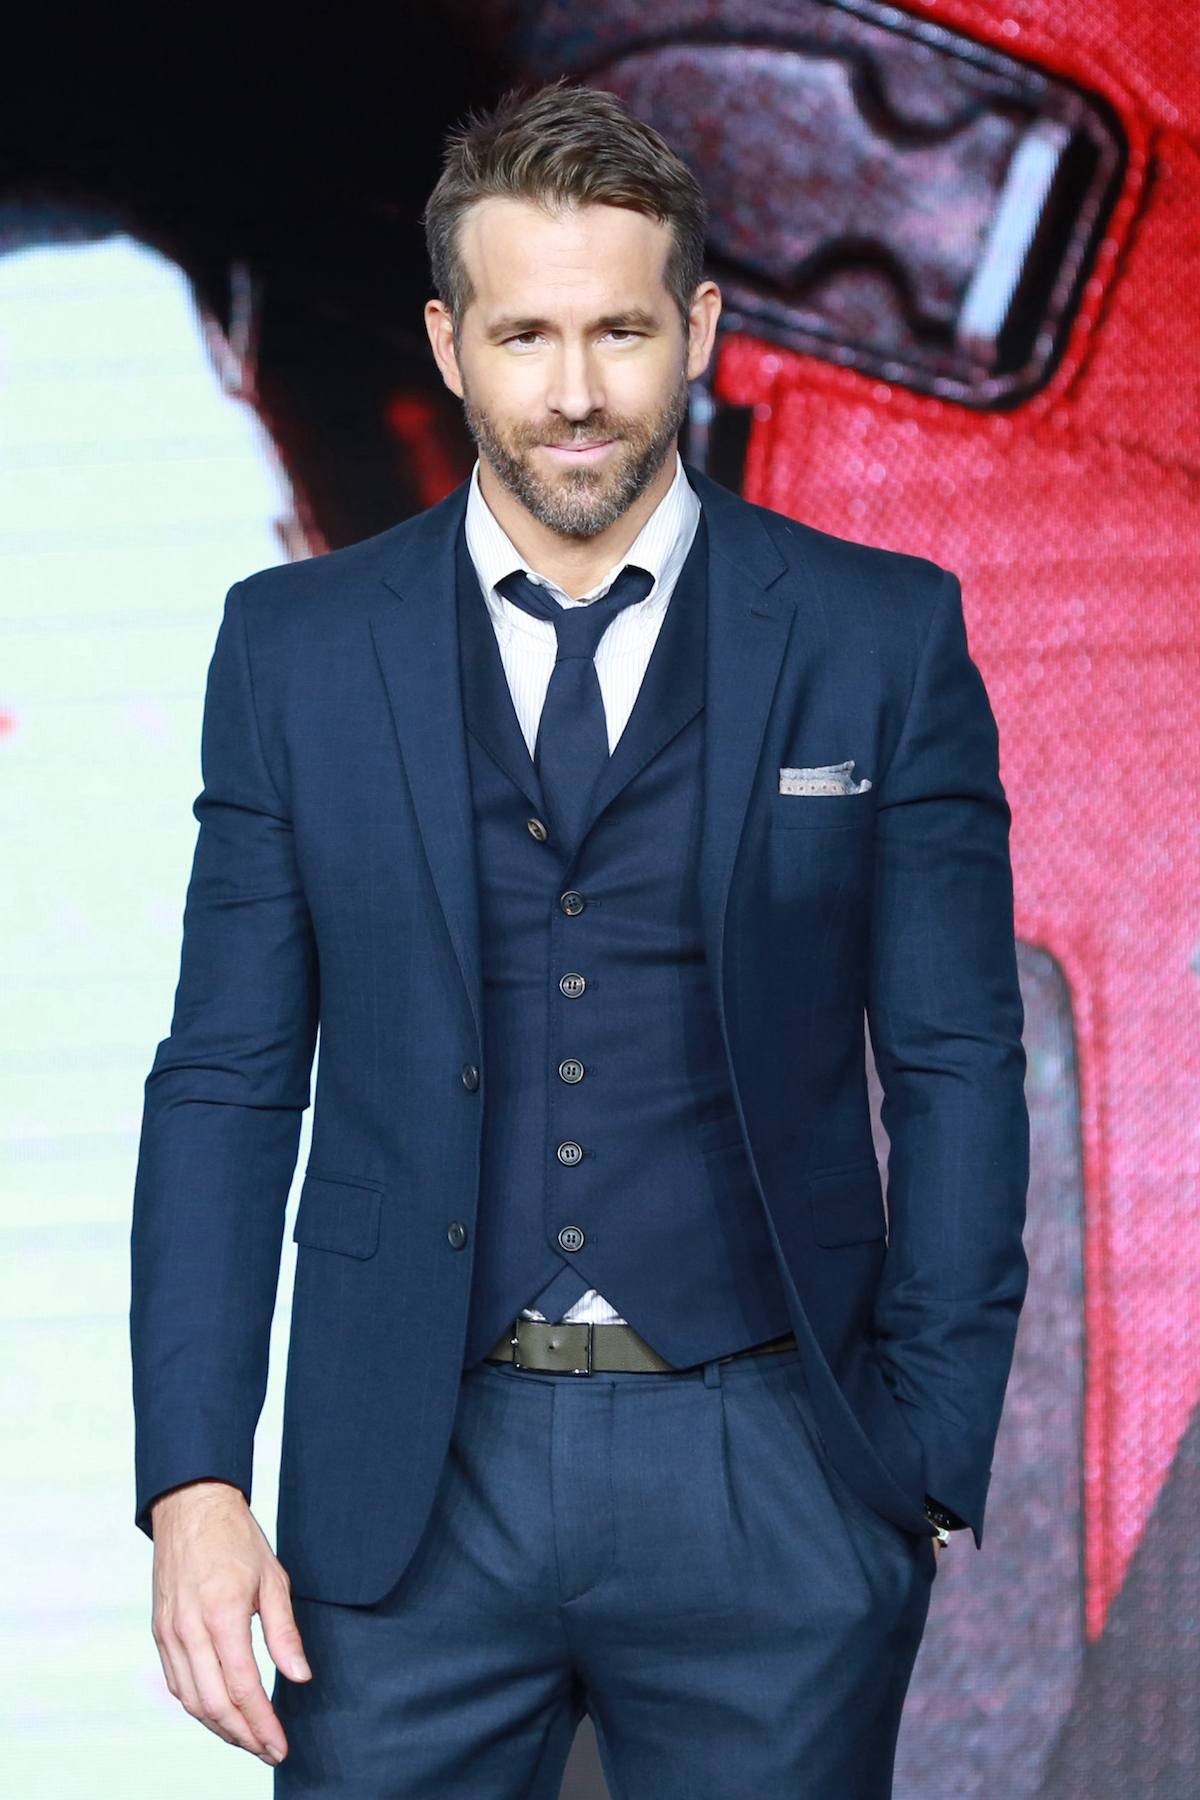 Ryan Reynolds Posts Video Tribute to John Candy on 25th Anniversary of His Death - Ryan Reynolds attends the premiere of 'Deadpool 2' on January 20, 2019 in Beijing, China.